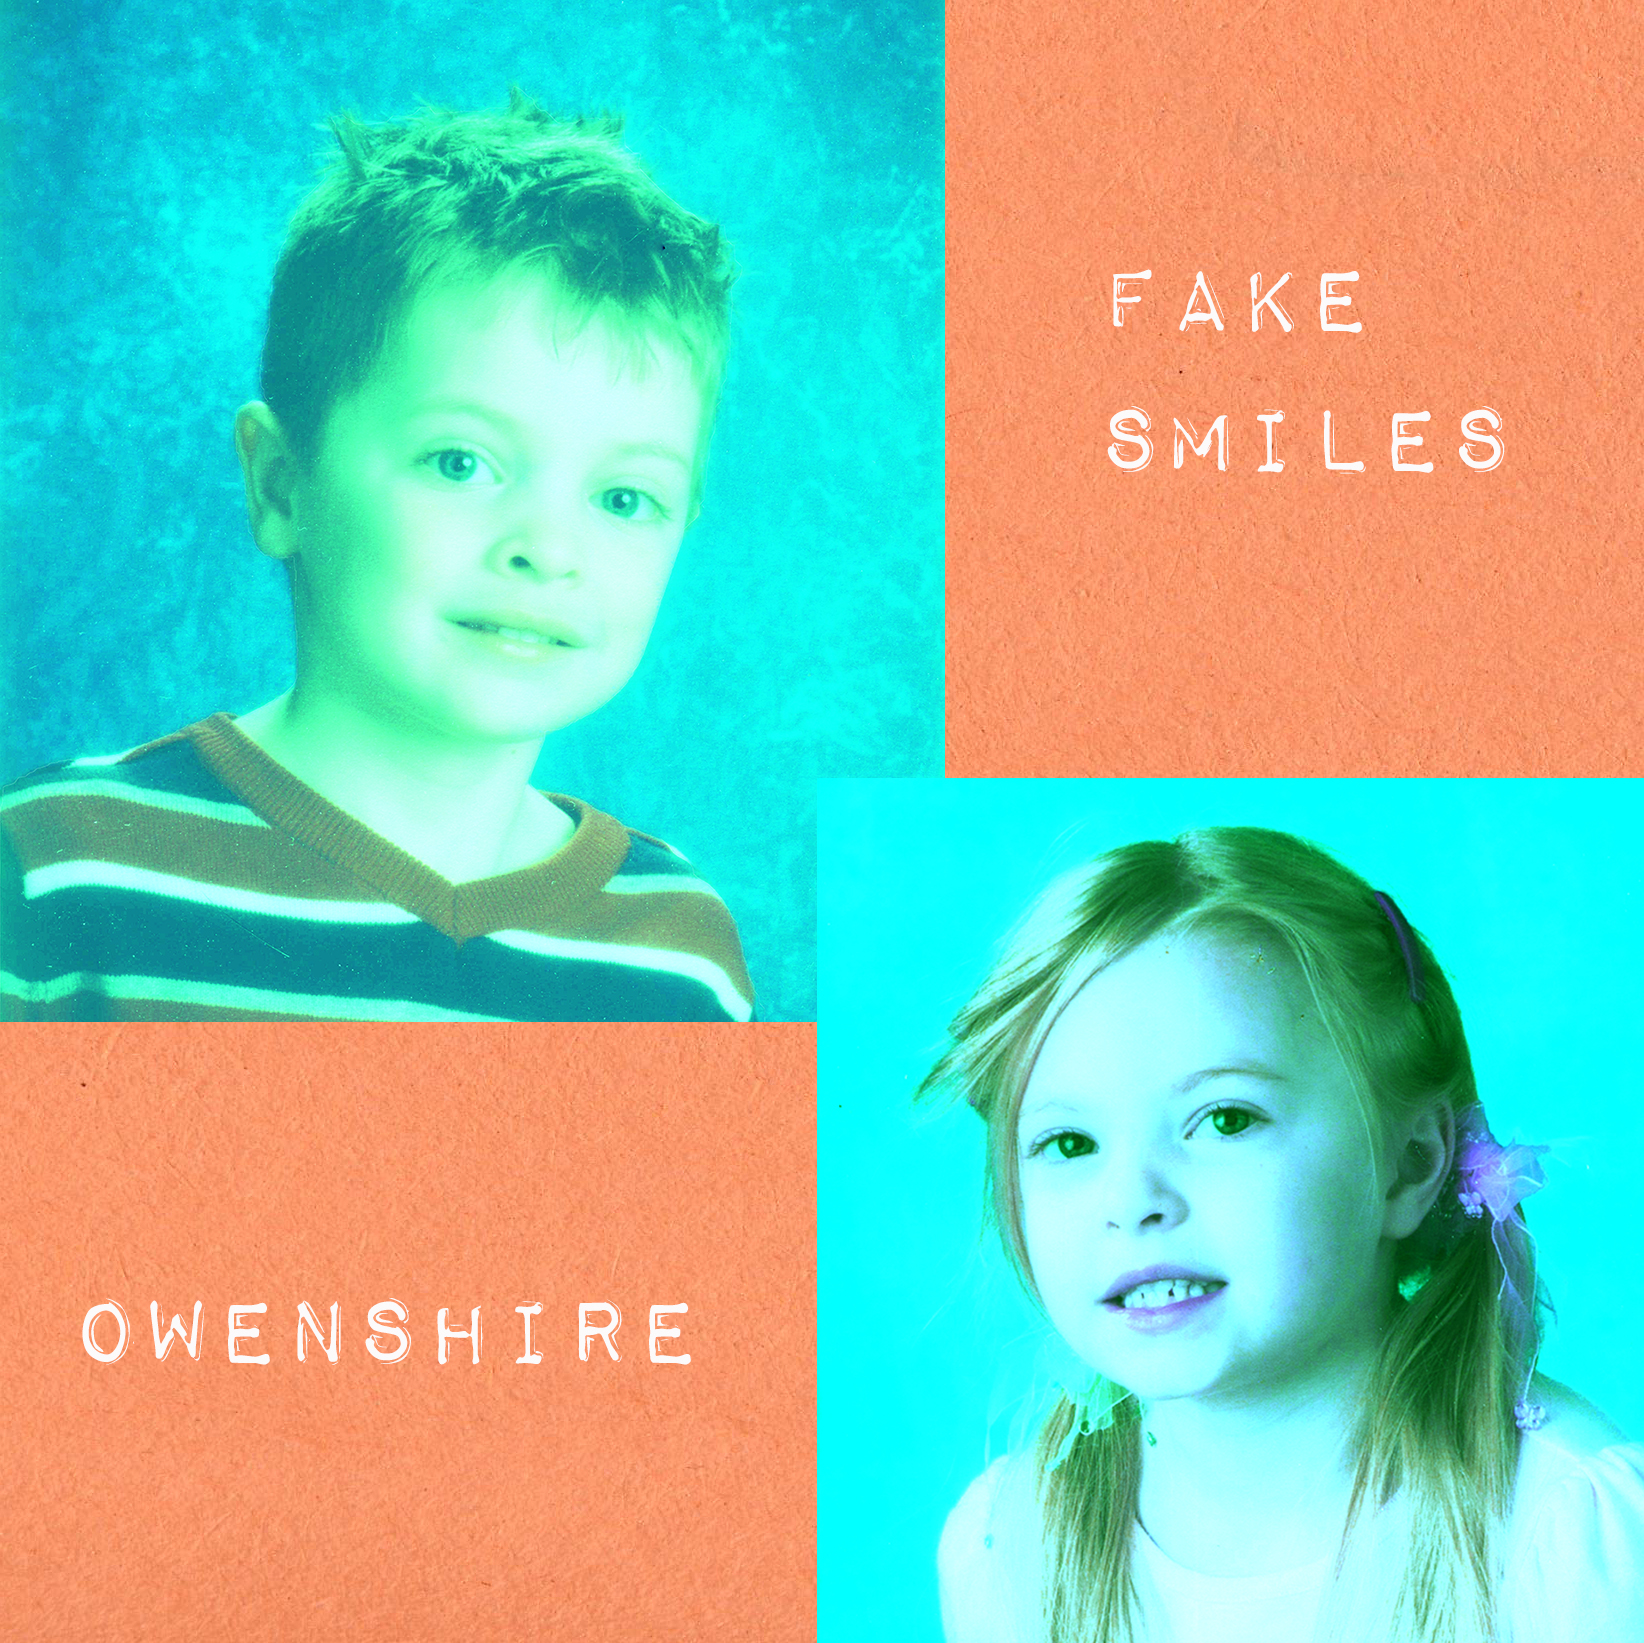 Owenshire FAKE SMILES COVER TEST 1